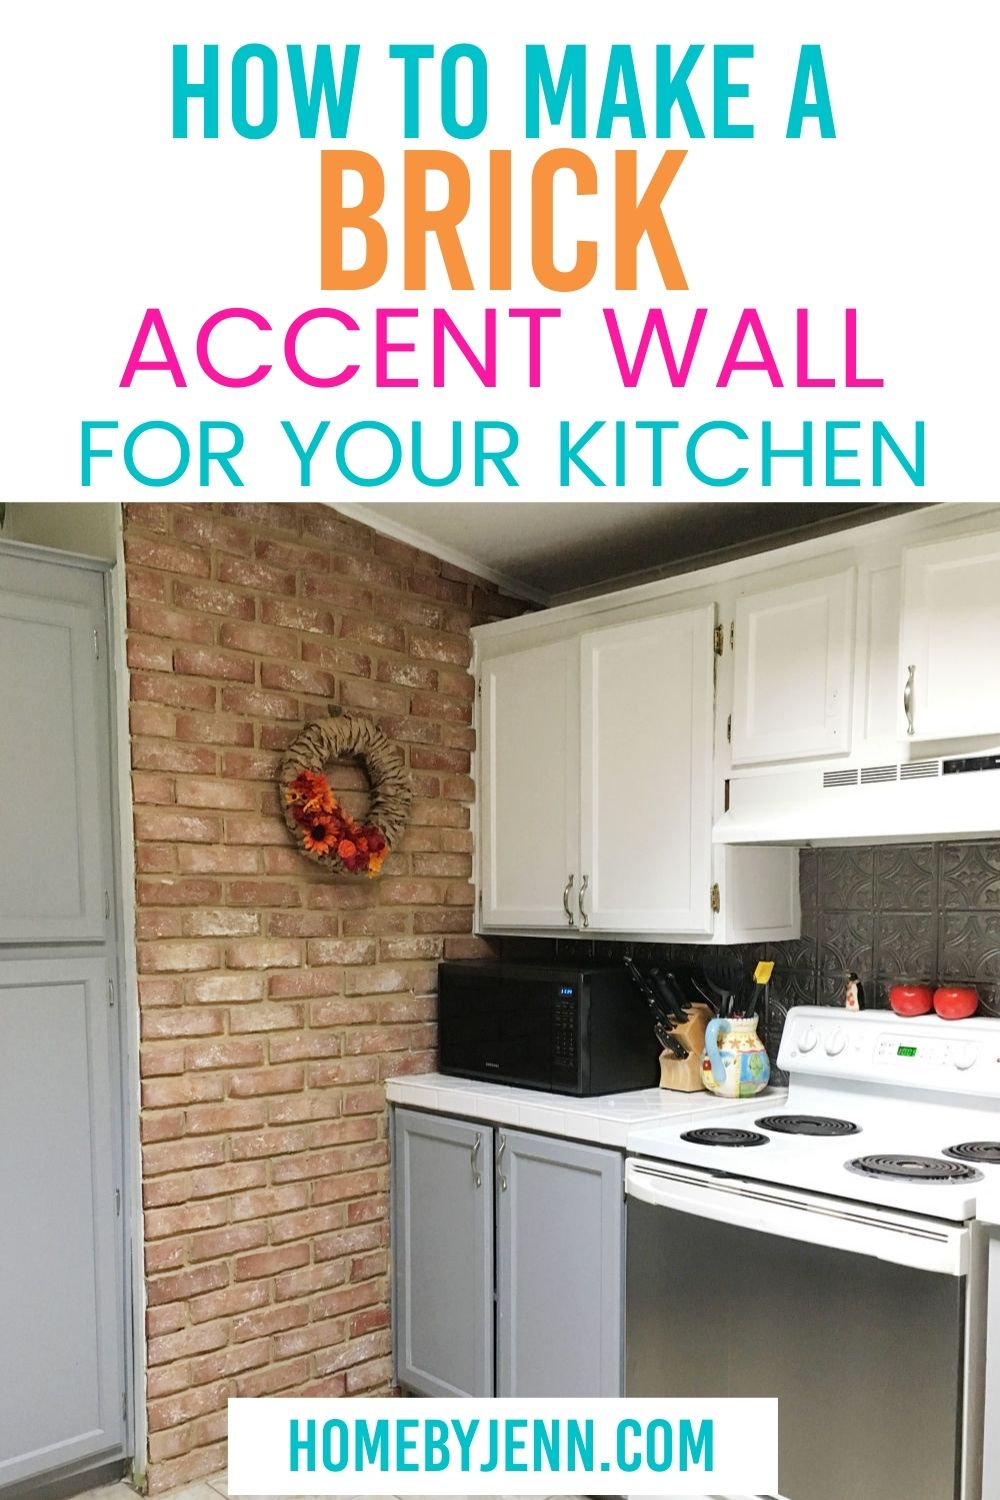 Follow this guide to learn how to make a brick accent wall for your kitchen today! This brick wall will transform your kitchen space #rustickitchn #brickwallaccent #diyforhome #brickaccent #kitchen #project #easy #diy via @homebyjenn